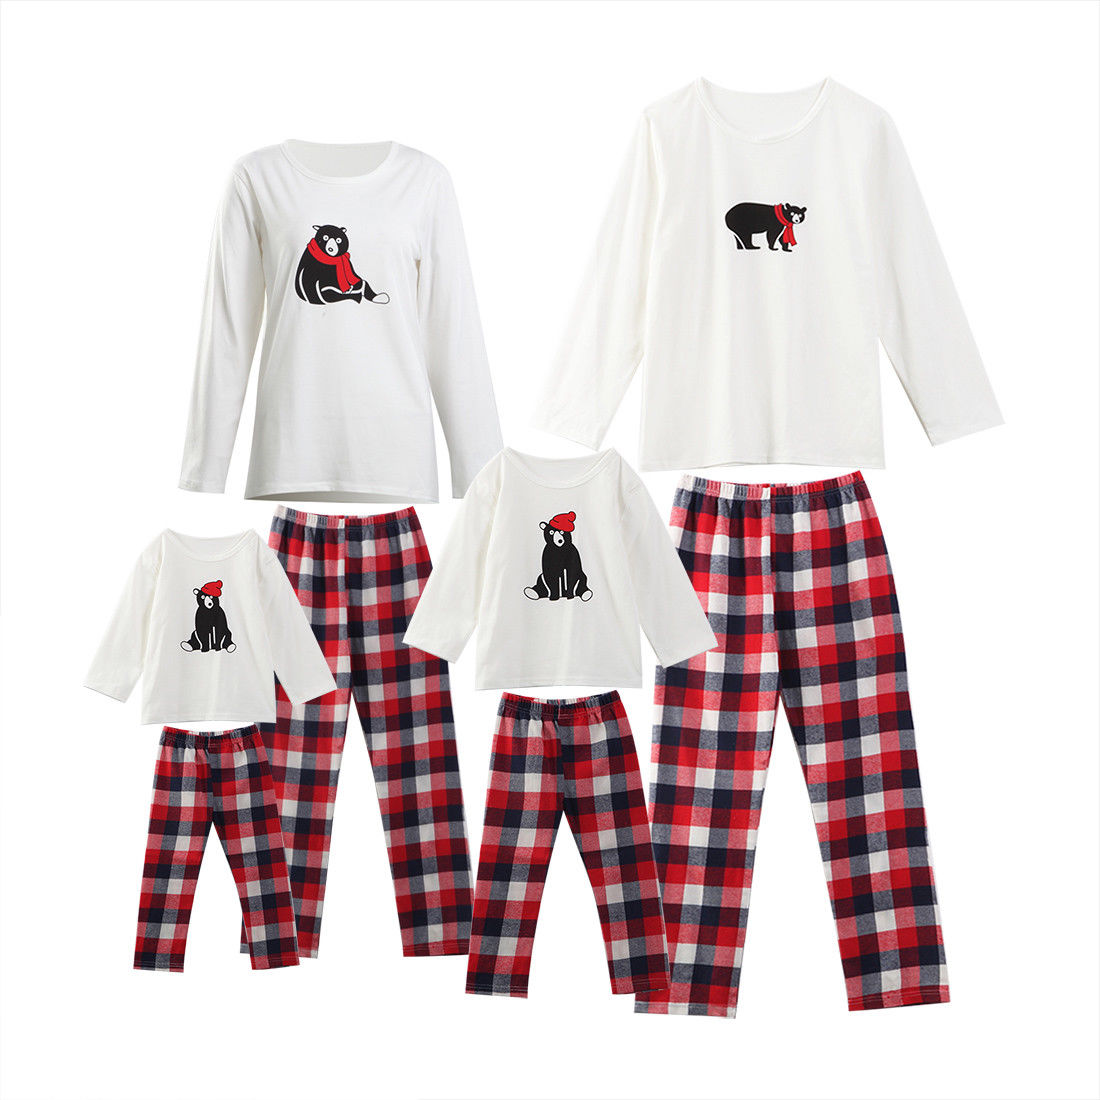 2017 Brand New Christmas Santa Claus Family Matching Pajamas Set Sleepwear Nightwear Pyjamas